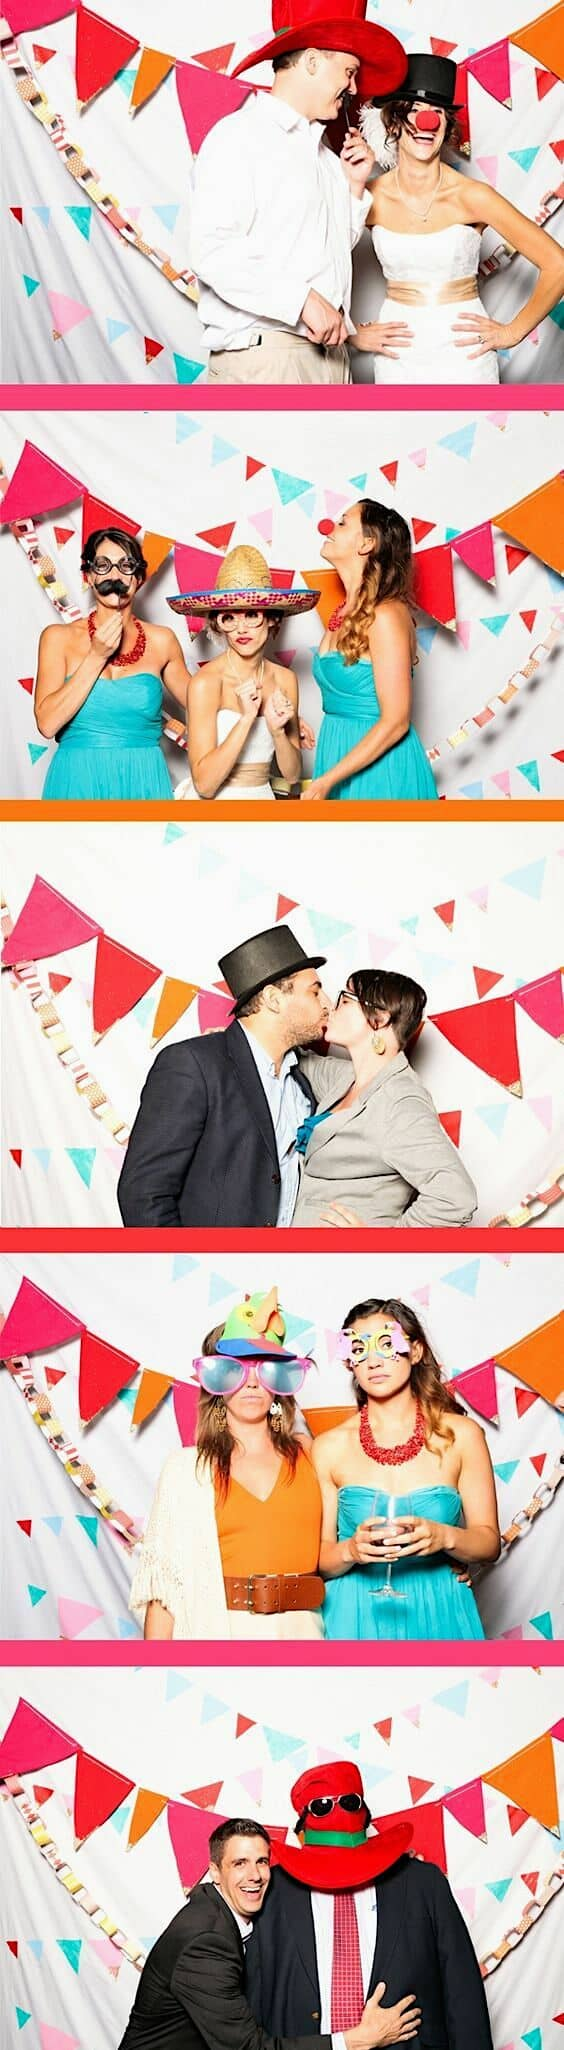 Perfectly simple photo booth ideas.